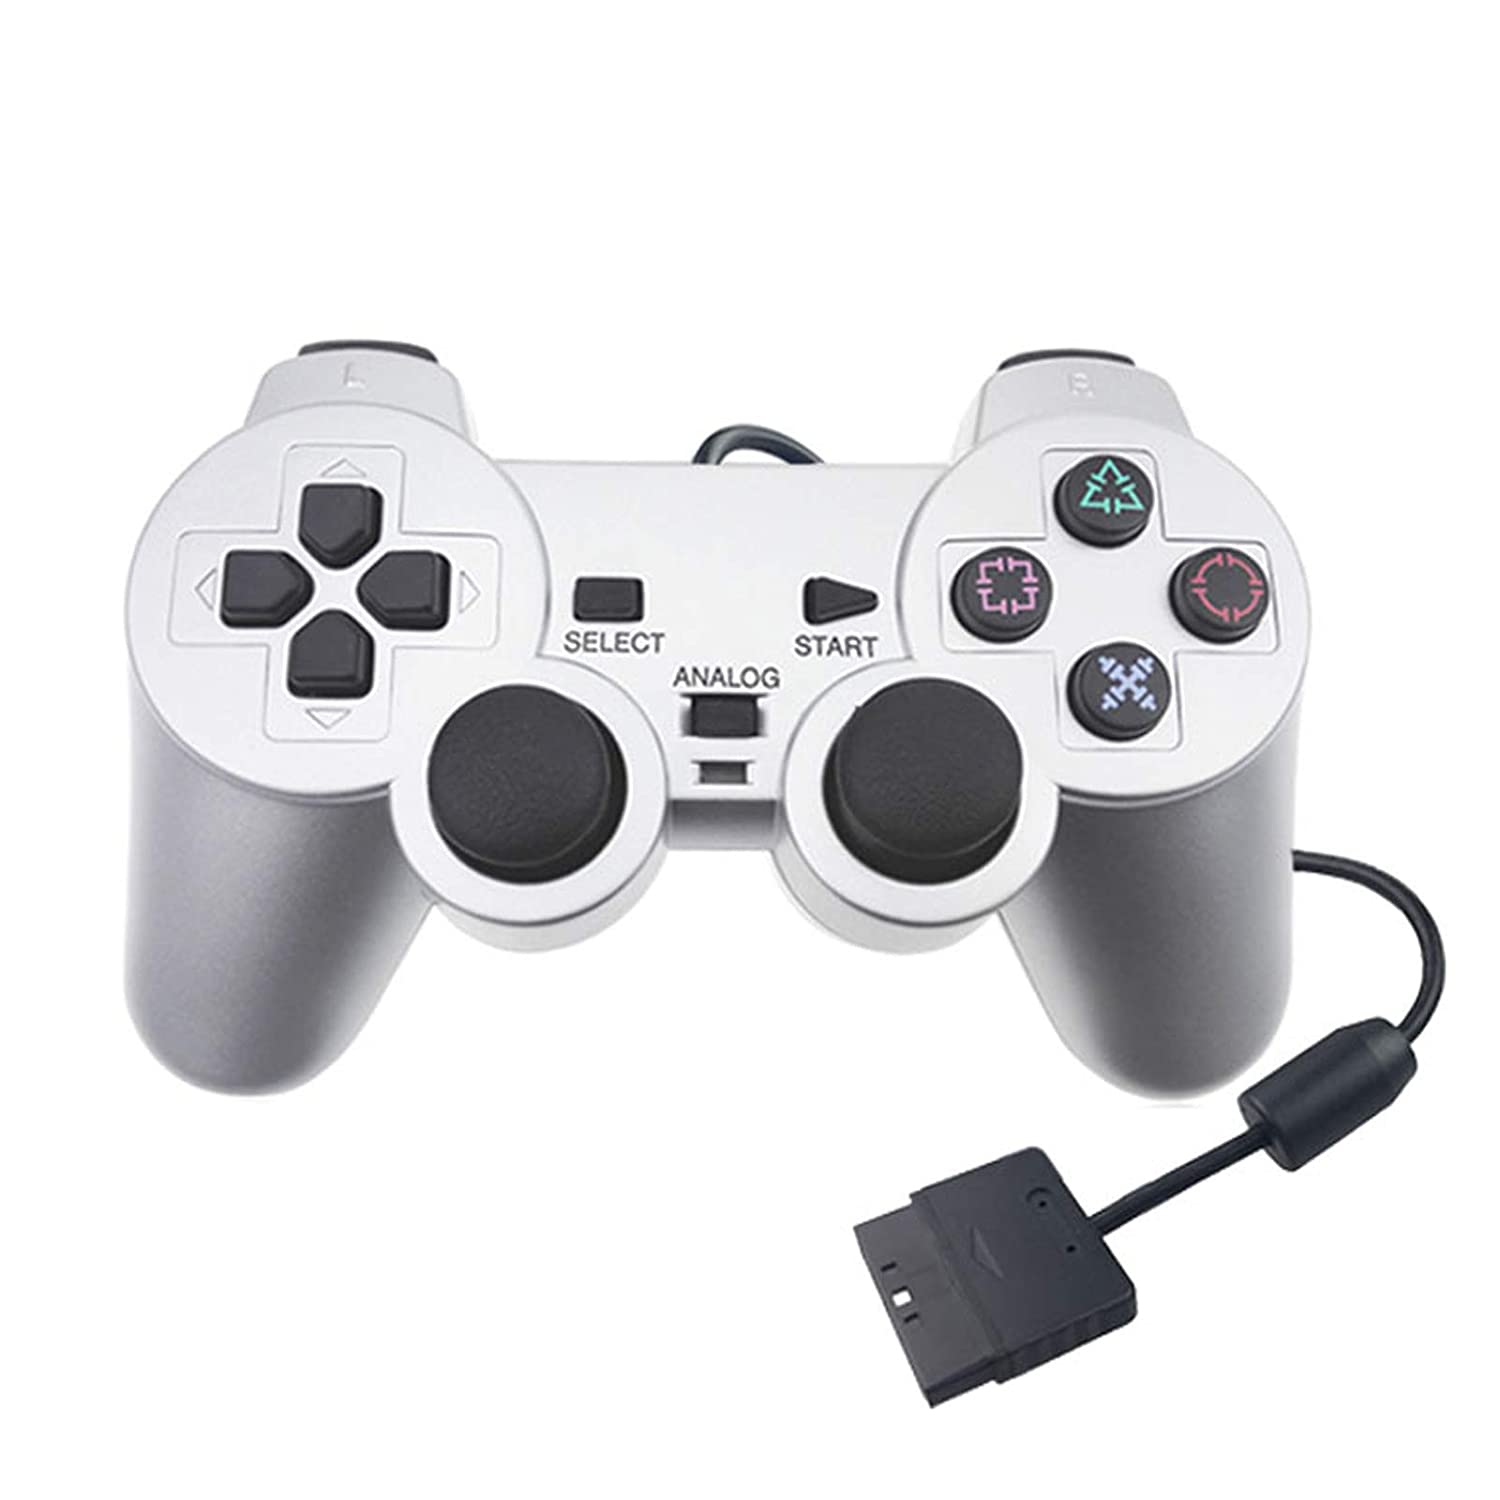 PS2 Controller Wired, MOLICUI Remote for Sony Playstation 2 Console,Silver